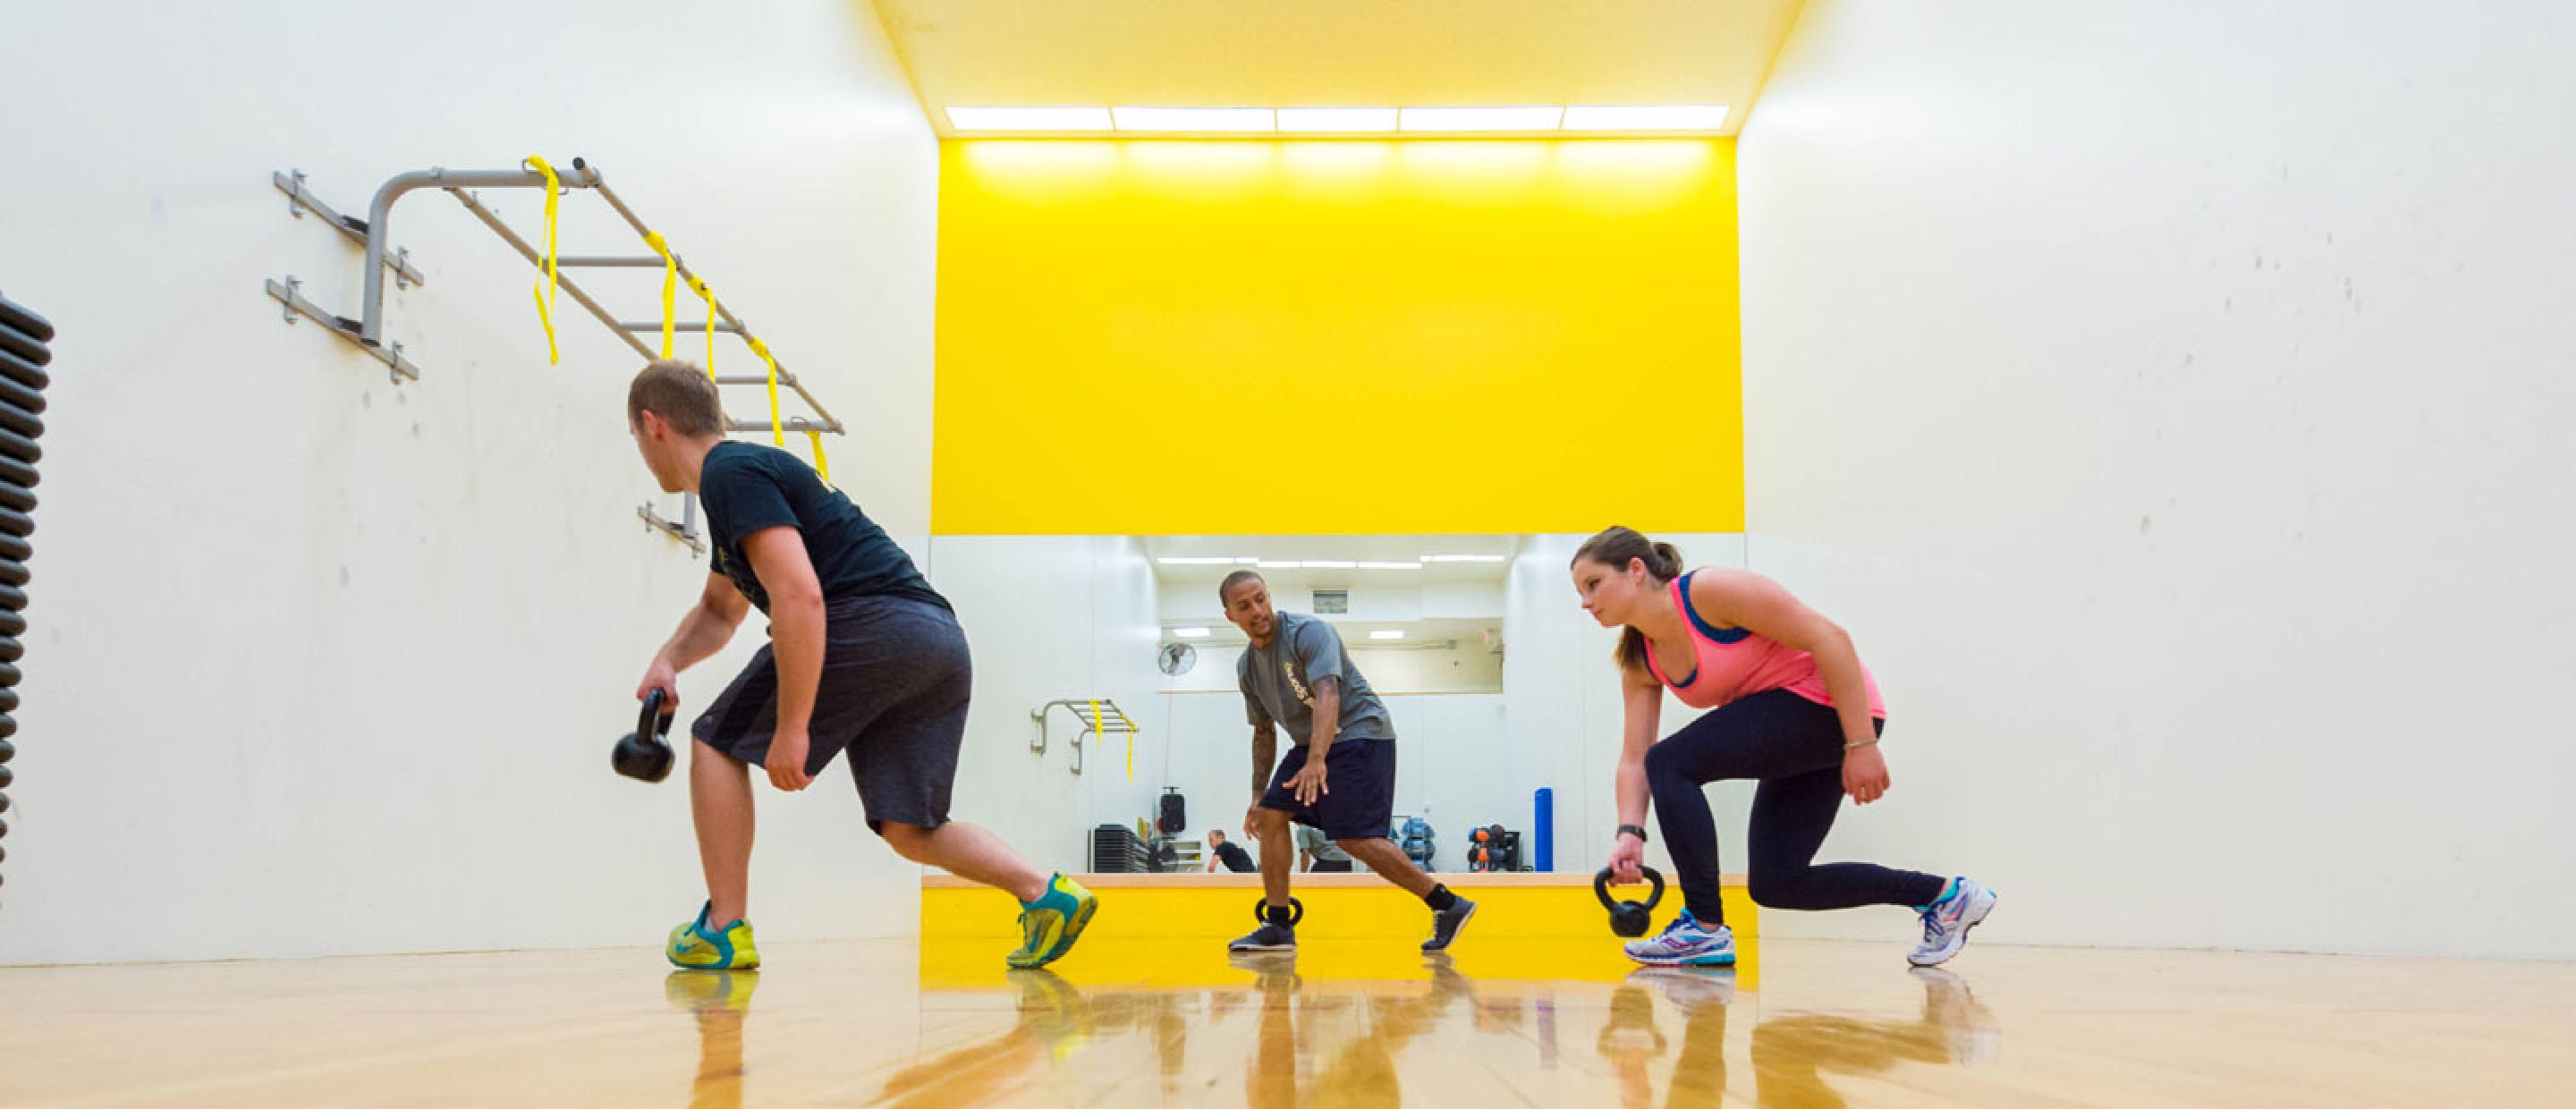 Participants in a kettlebell fitness class